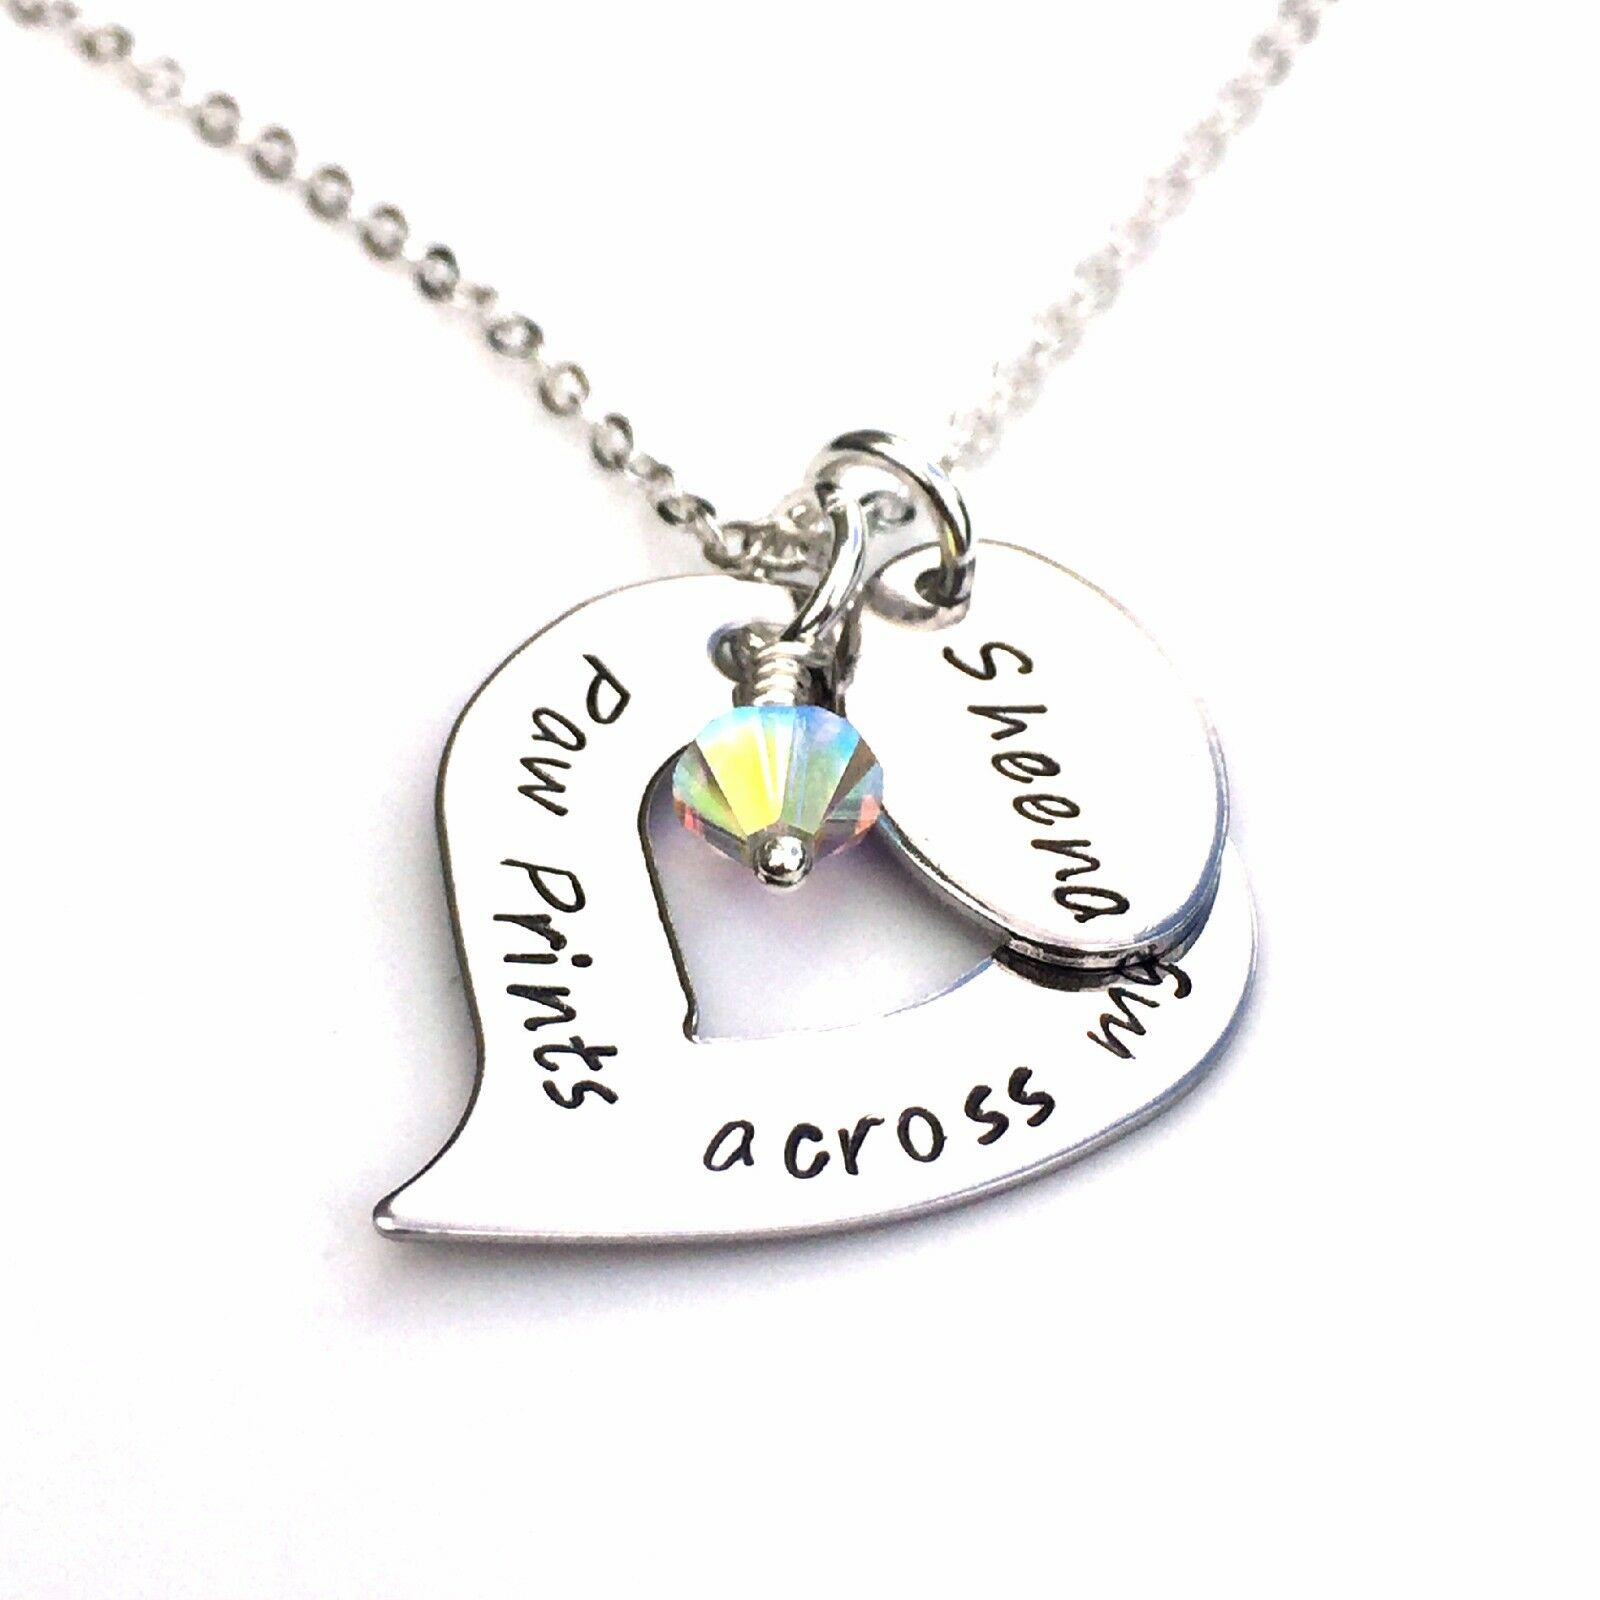 Rainbow Bridge, Loss of a Pet, Pet Memory, Personalised Necklace, Pet Jewellery